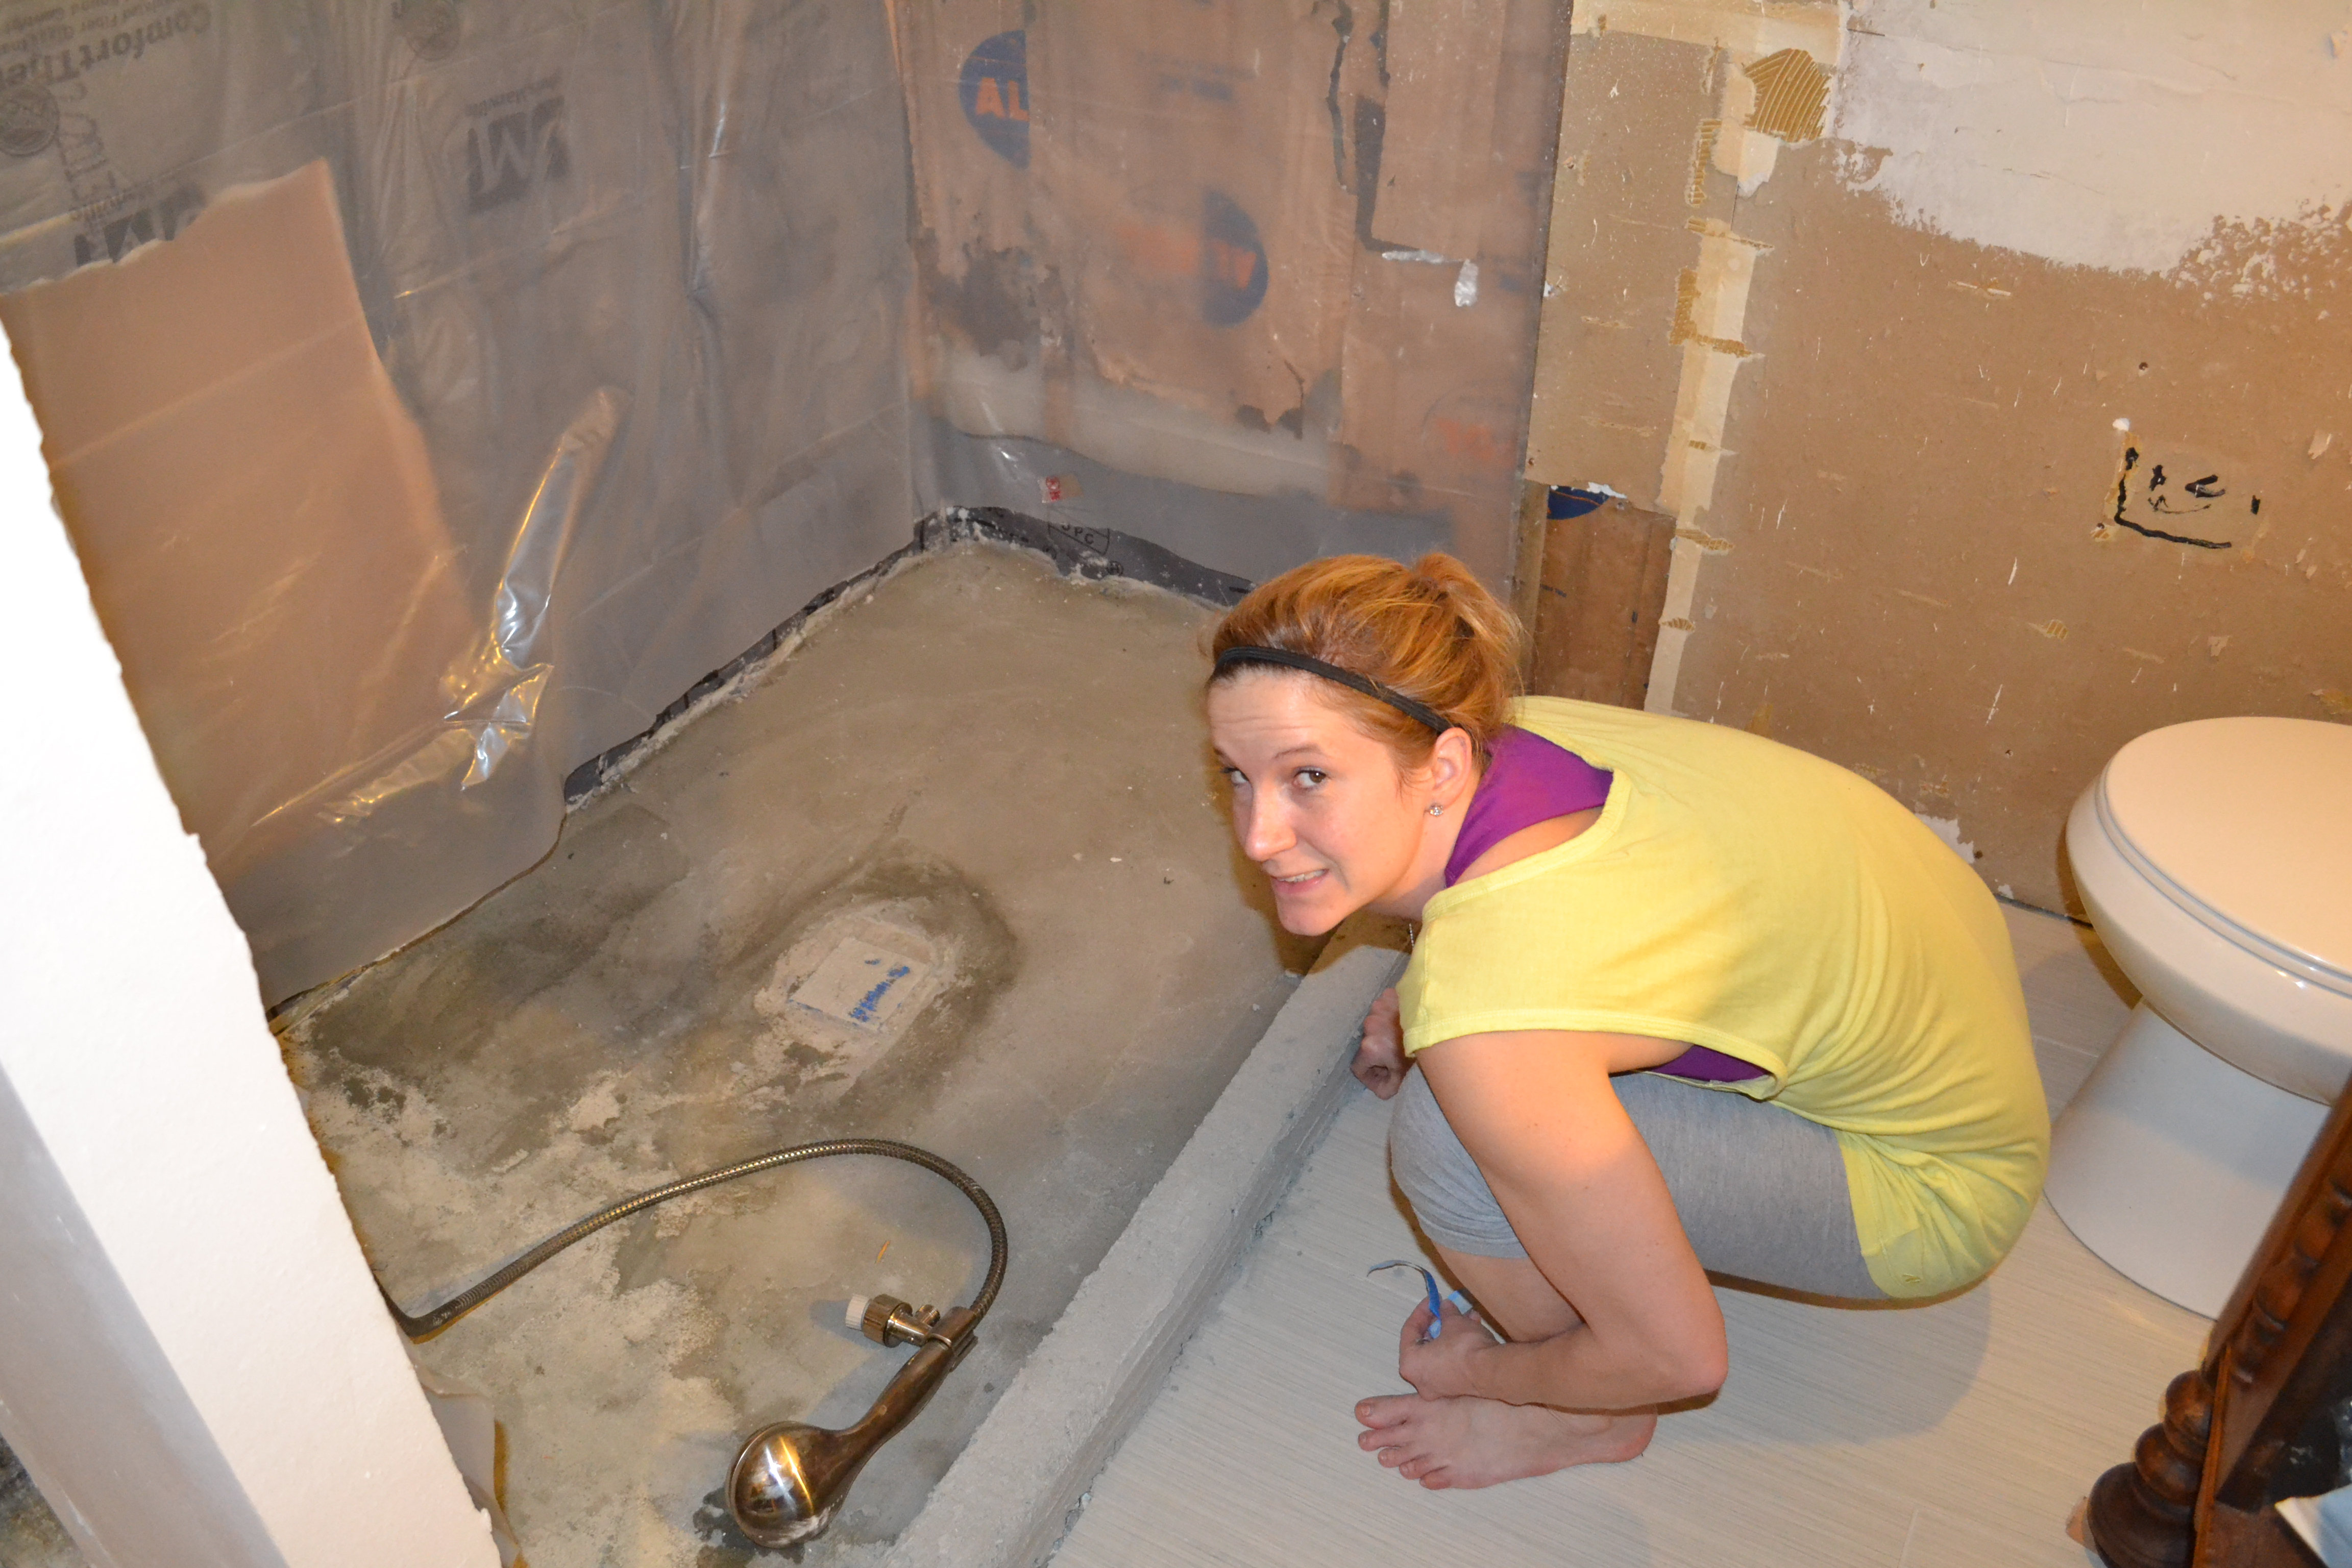 Pictures of a Girl Tiling a Shower | Pardon Our Sawdust